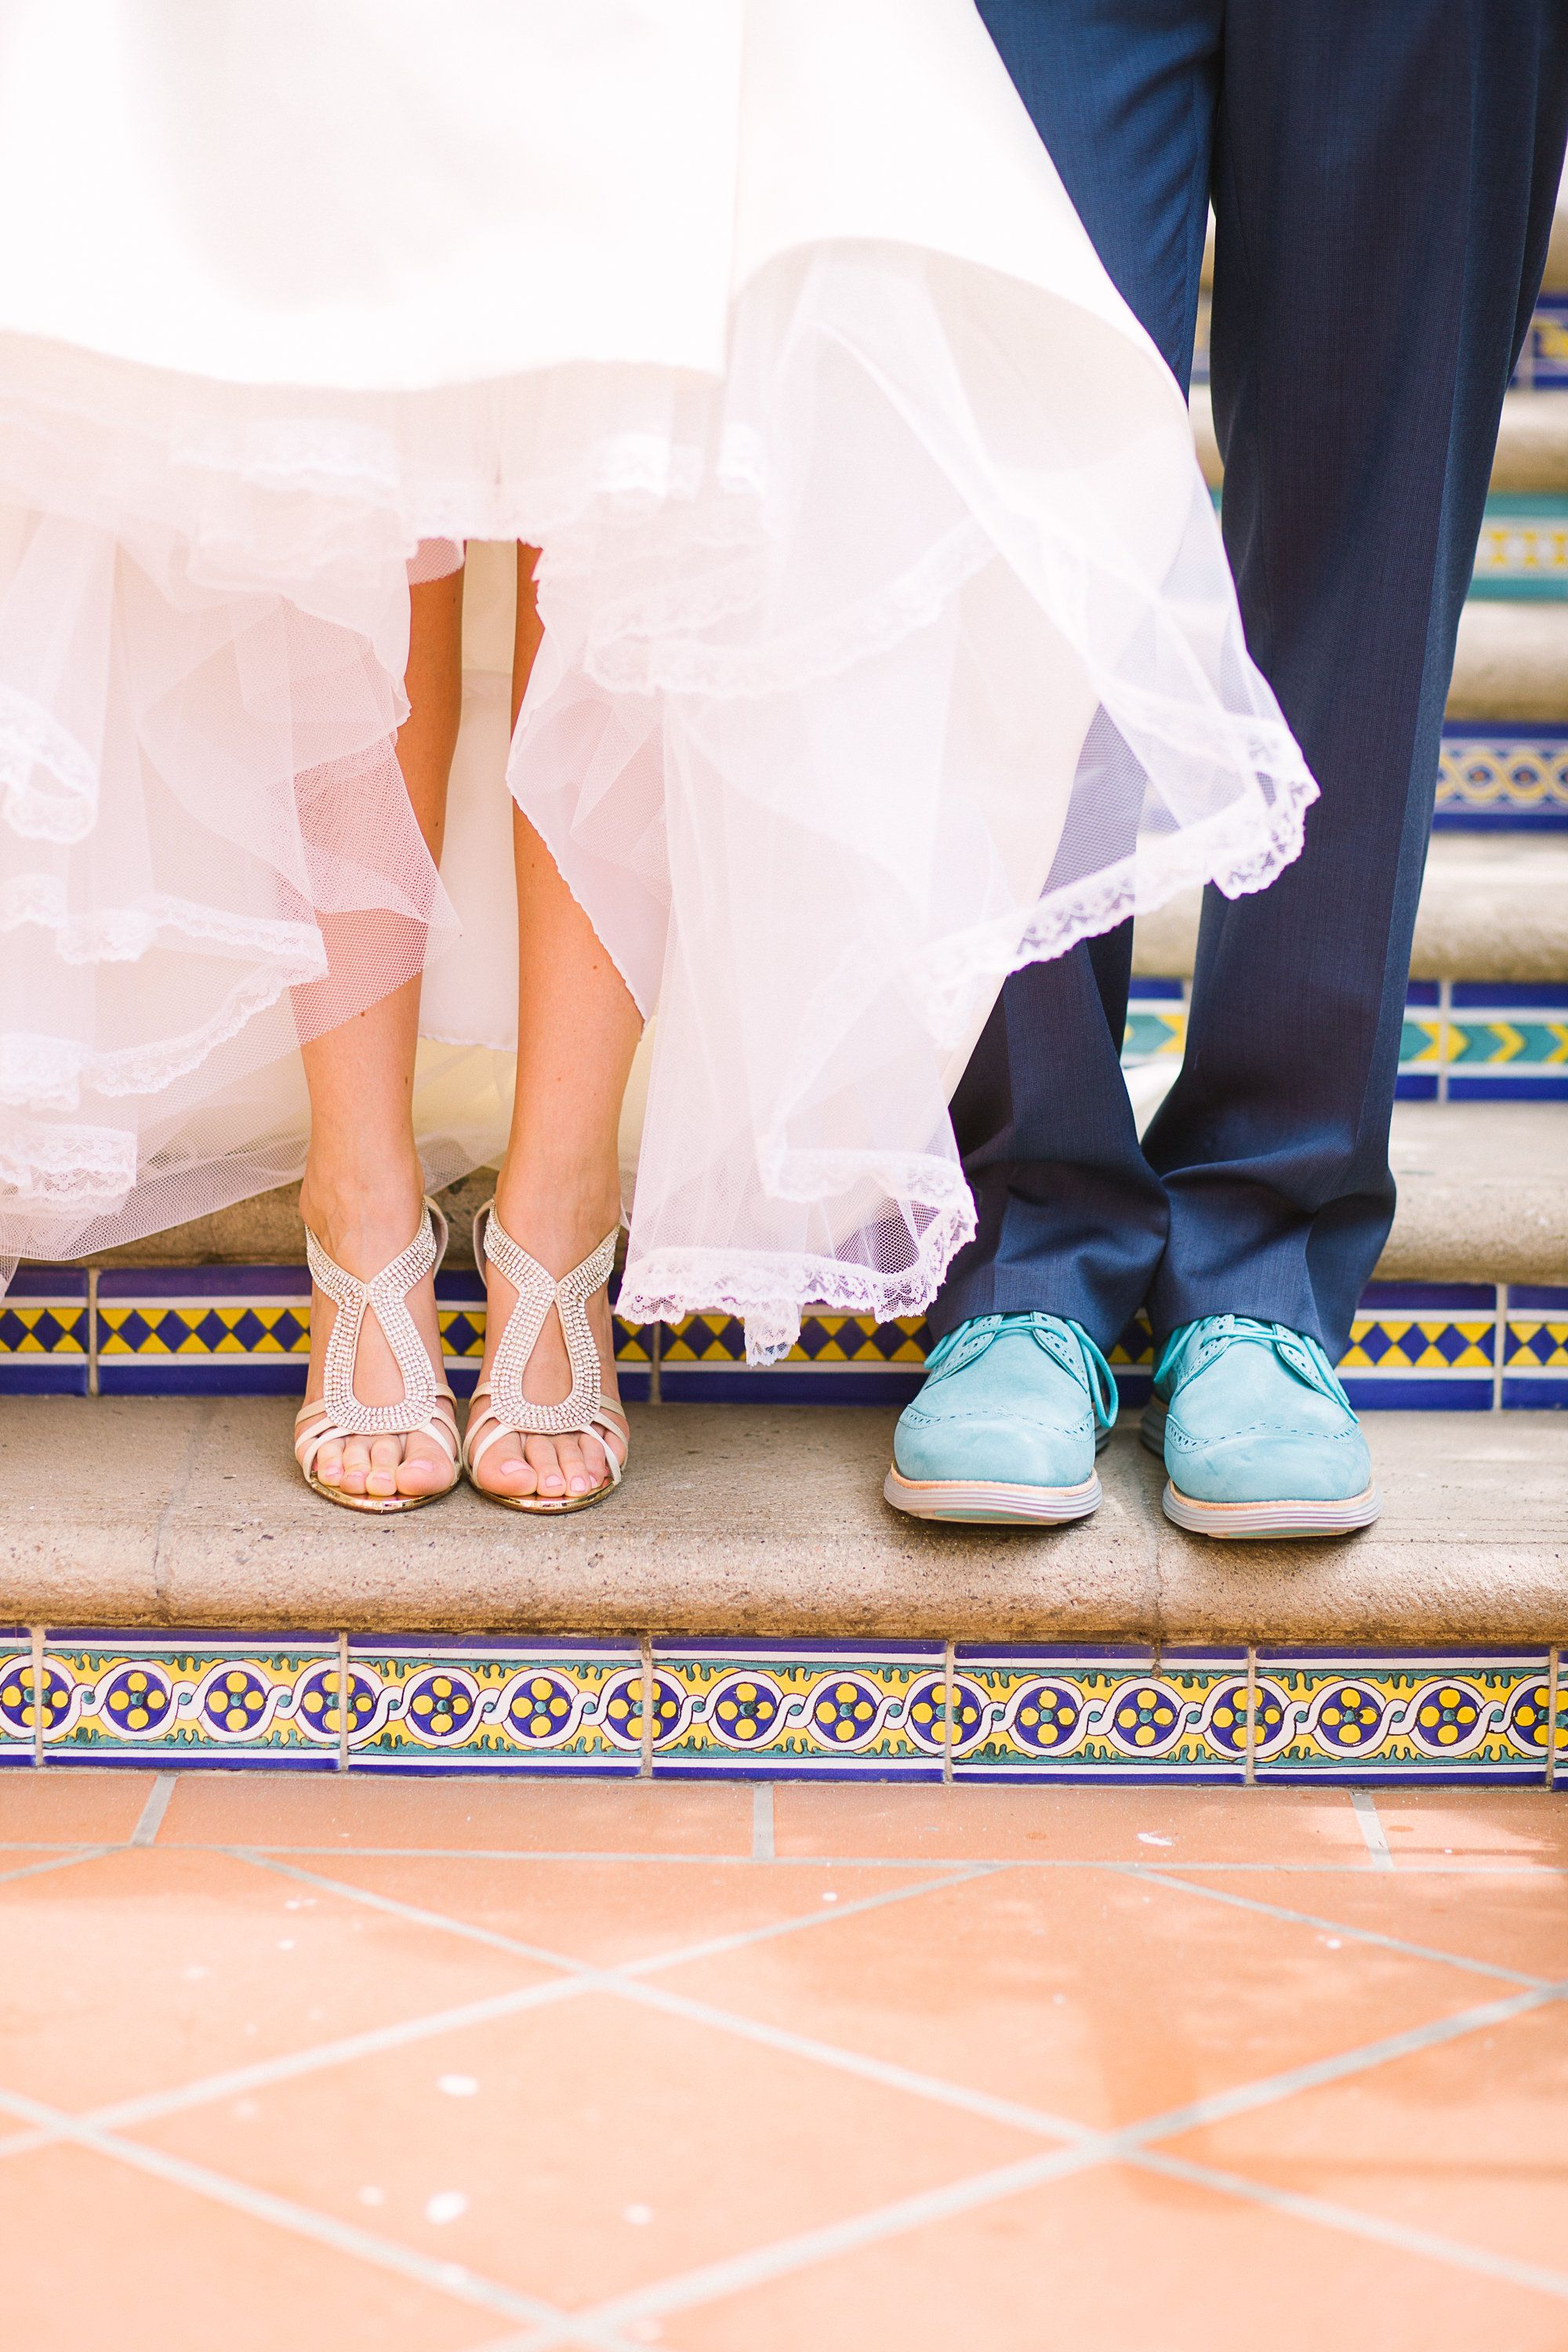 Great shoes all around! View the full wedding here: http://thedailywedding.com/2016/01/15/villa-coastal-wedding-lauren-zach/